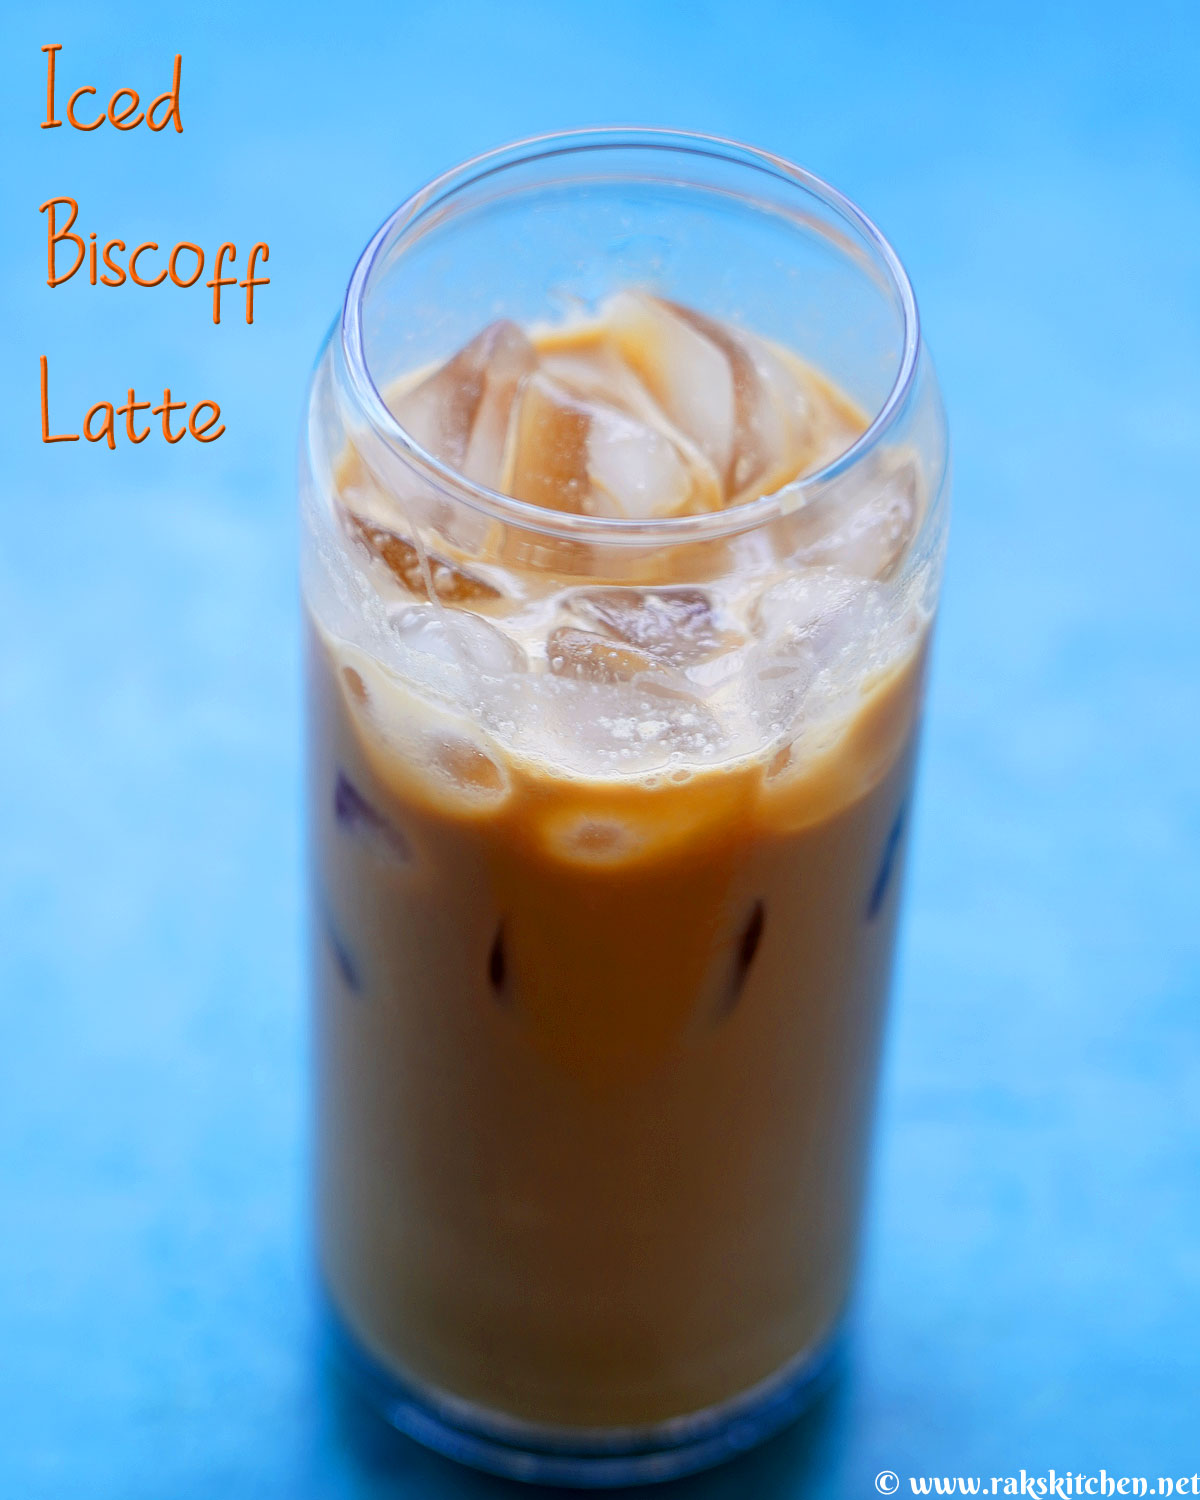 iced-biscoff-coffee, mixed